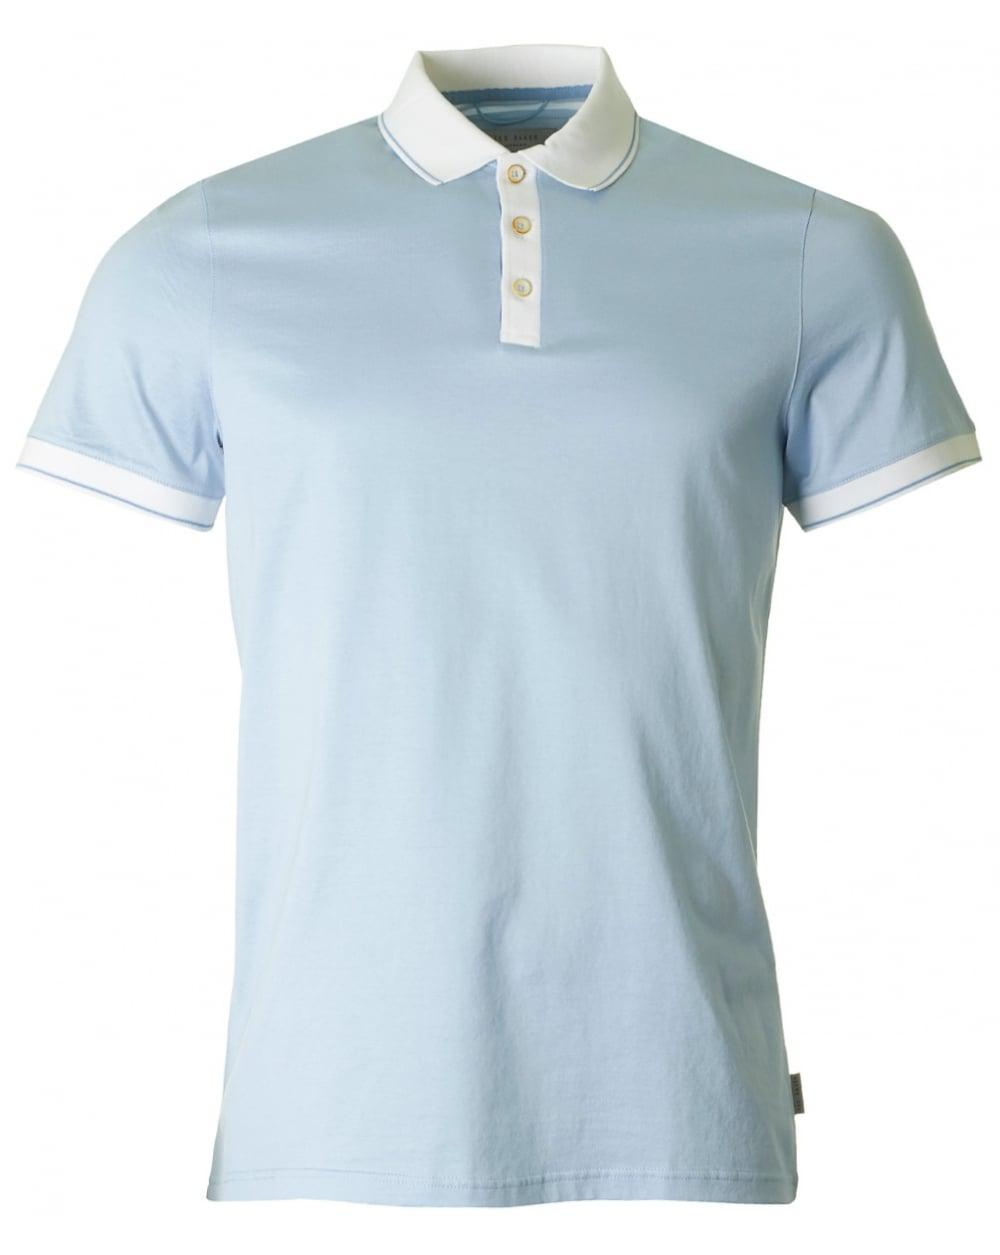 55f0f2f59e8aff Lyst - Ted Baker Staffy Contrast Collar Polo in Blue for Men